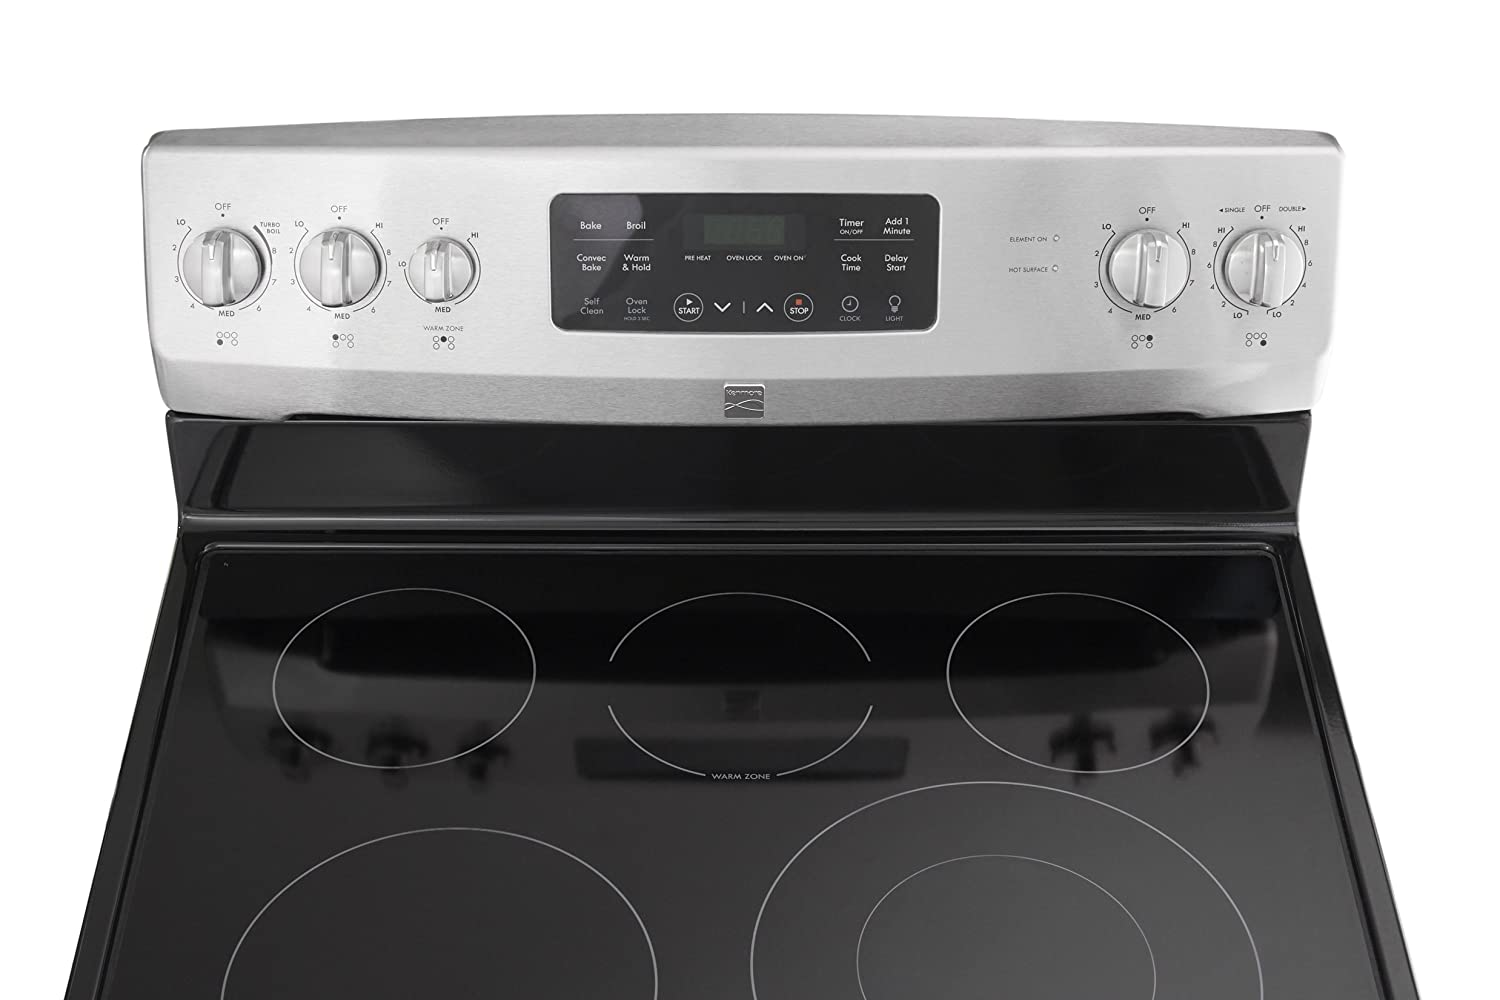 Kenmore 94193 54 Cu Ft Self Clean Electric Range With Wash Dishwasher Parts Diagram On Ultra Convection Oven And Turbo Boil Element In Stainless Steel Includes Delivery